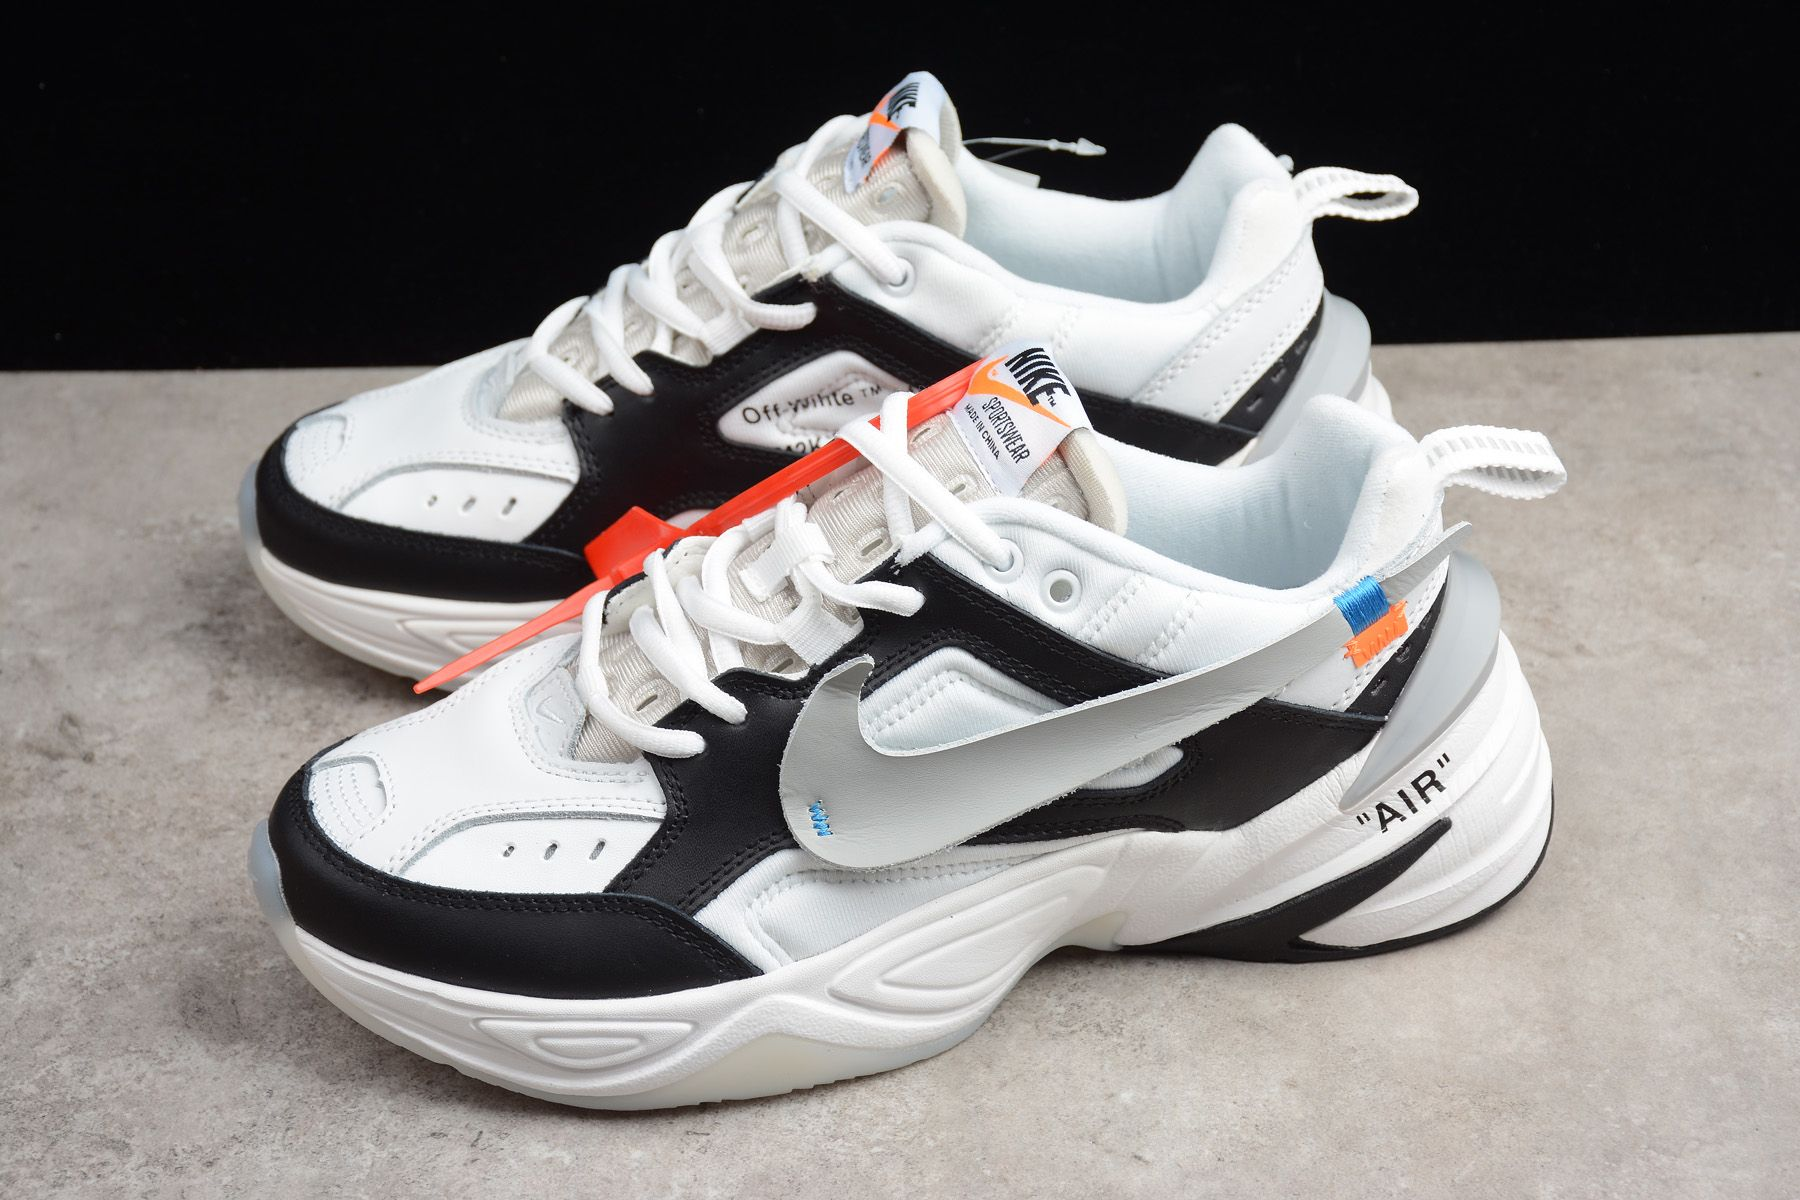 2018 Off White X Nike M2k Tekno Black White Grey Men S And Women S Size A03108 062 Sneakers Leather Shoes Woman Sneakers Fashion